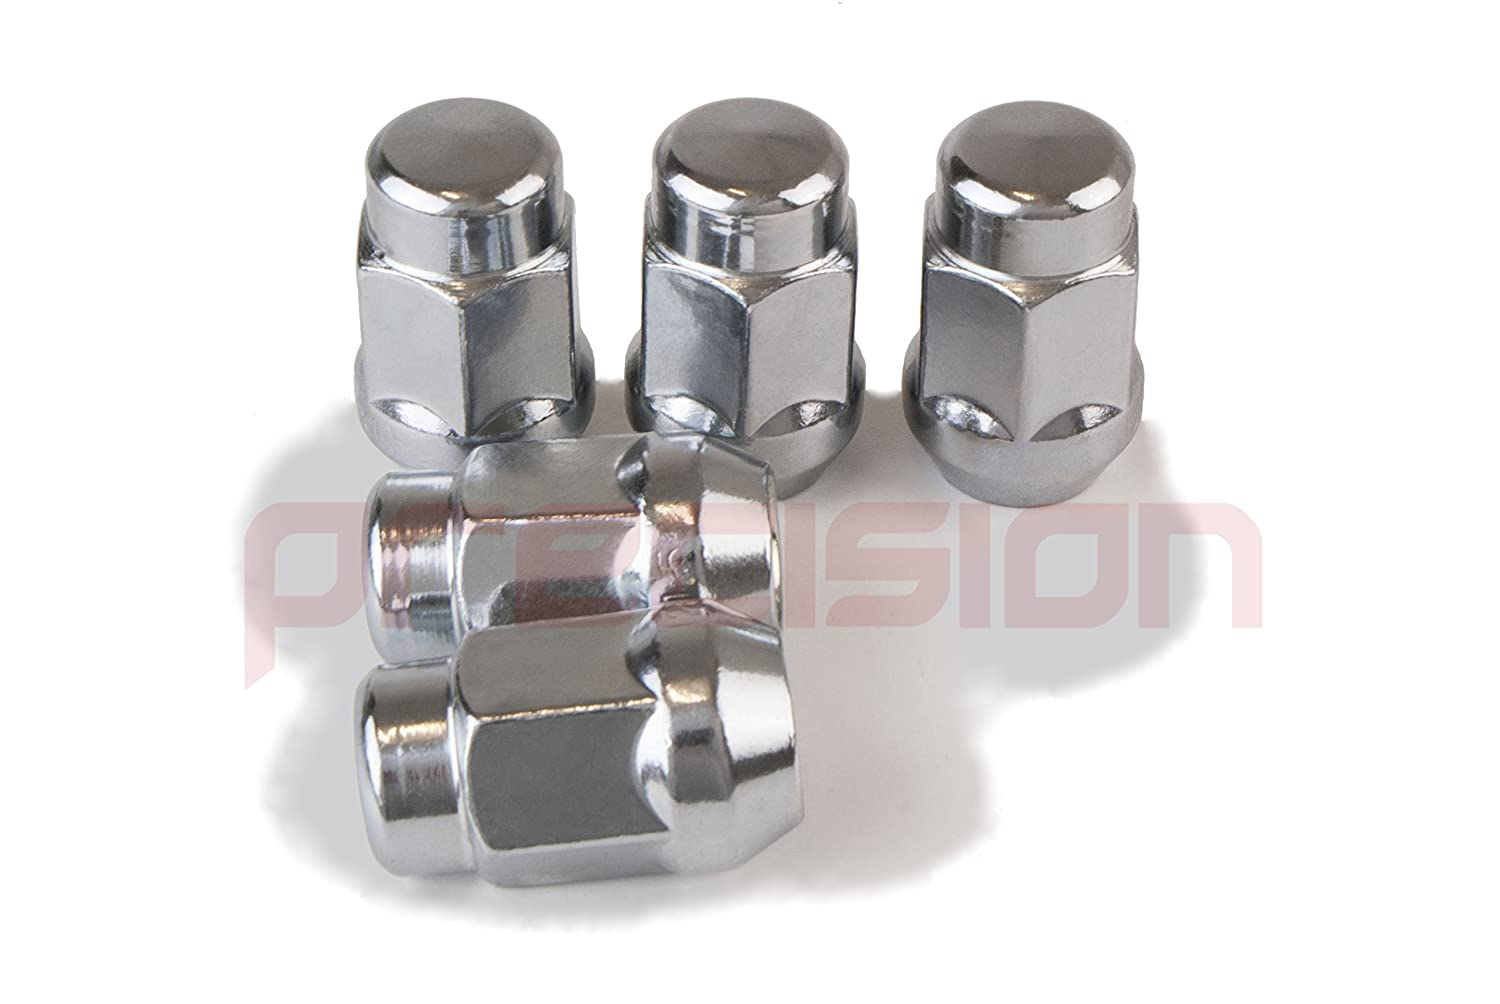 16NM10+N10541 Precision 16 x Chrome Alloy Wheel Nuts and 4 x Locking Nuts for Ḟord Grand C-Max with Aftermarket Alloy Wheels Part No